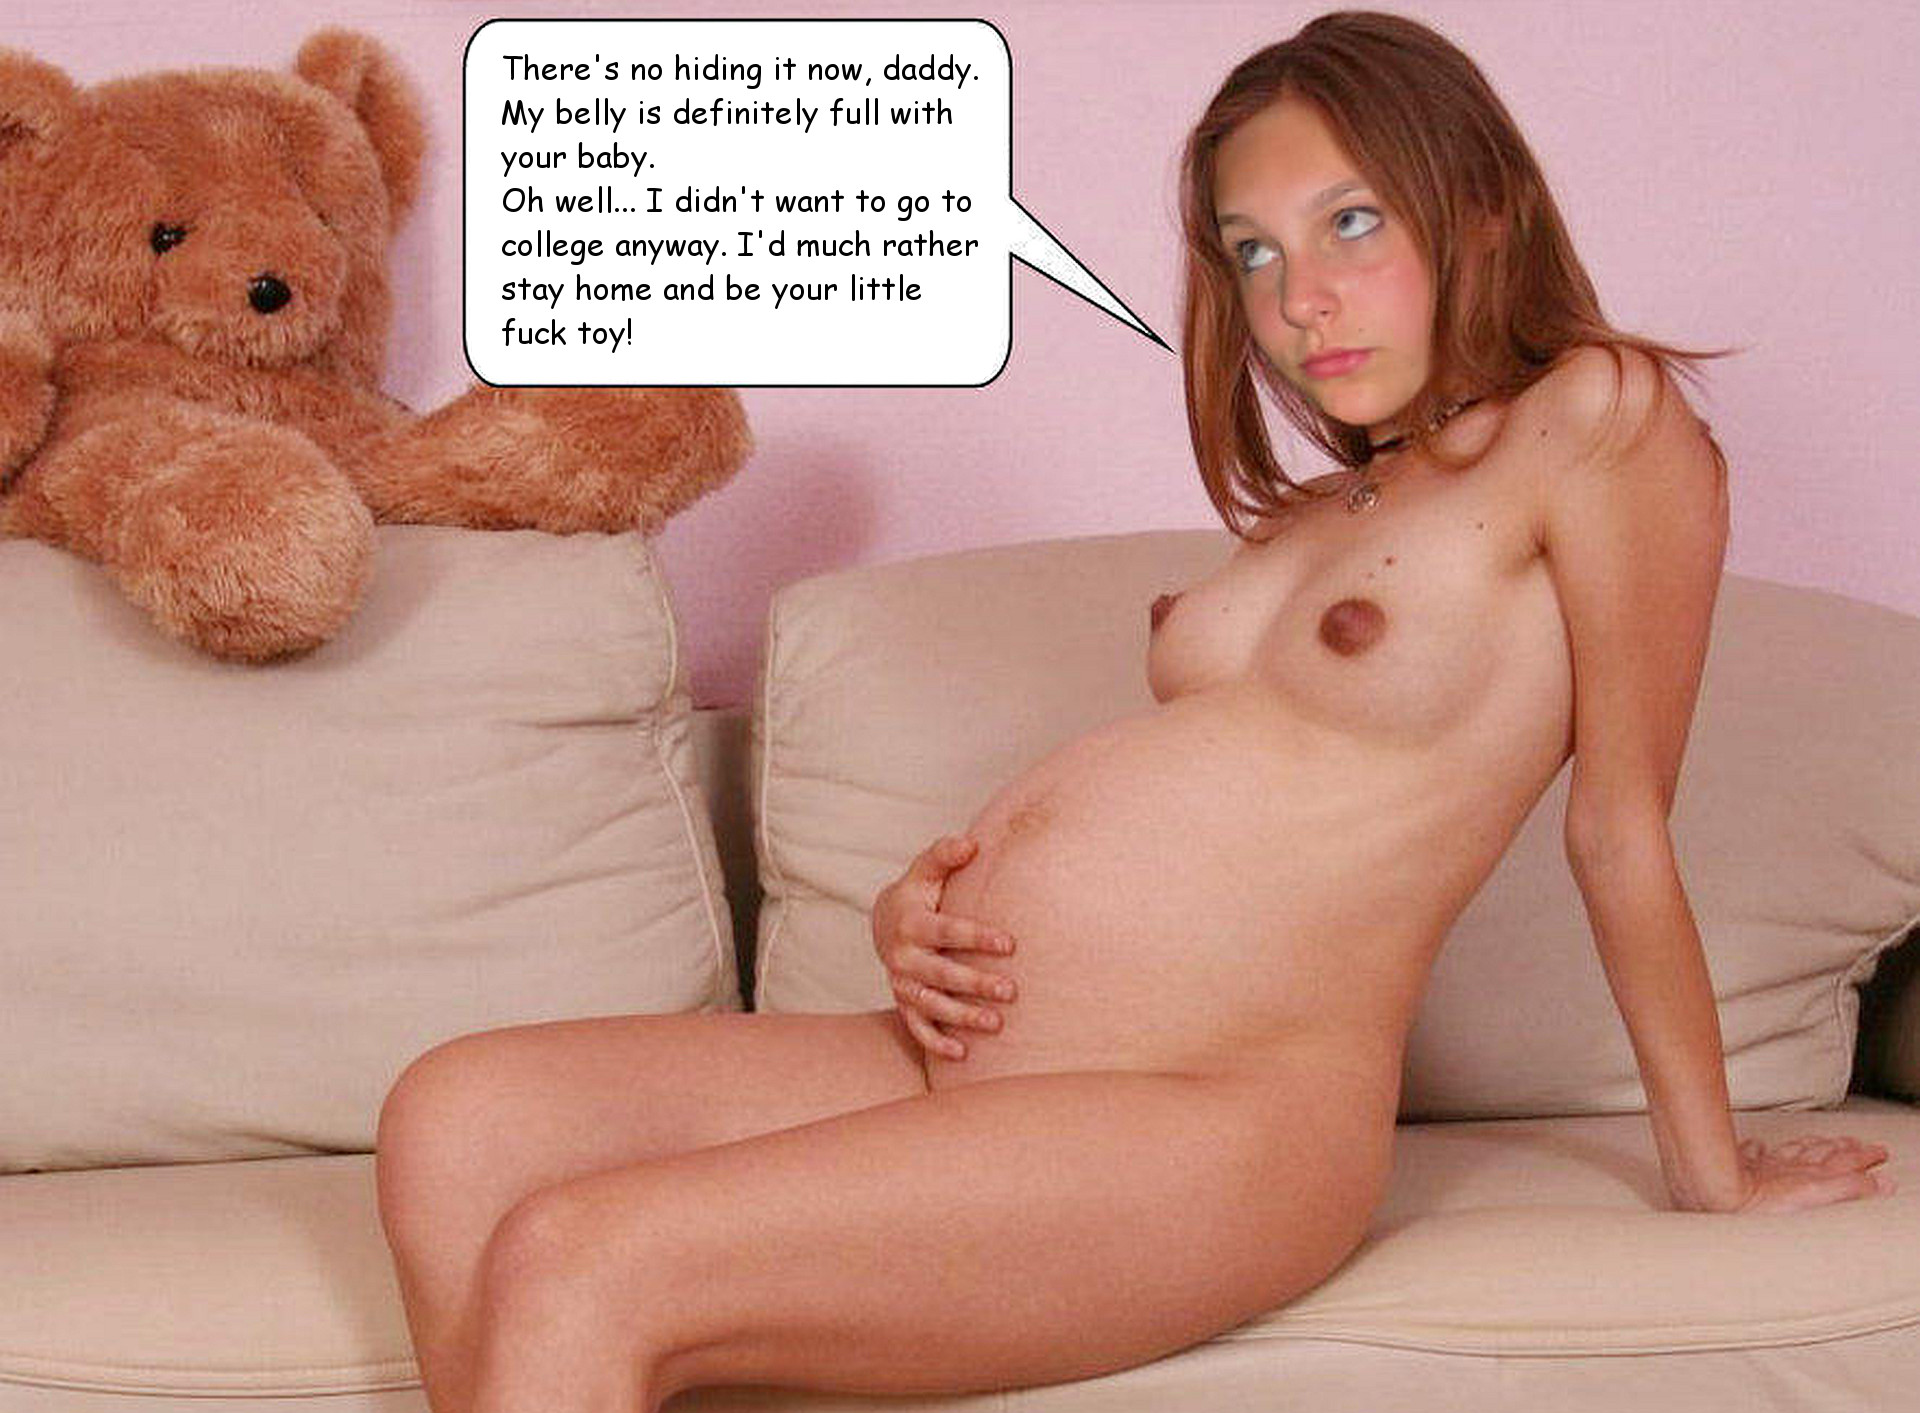 Excellent, support. youngest girl fuck toy